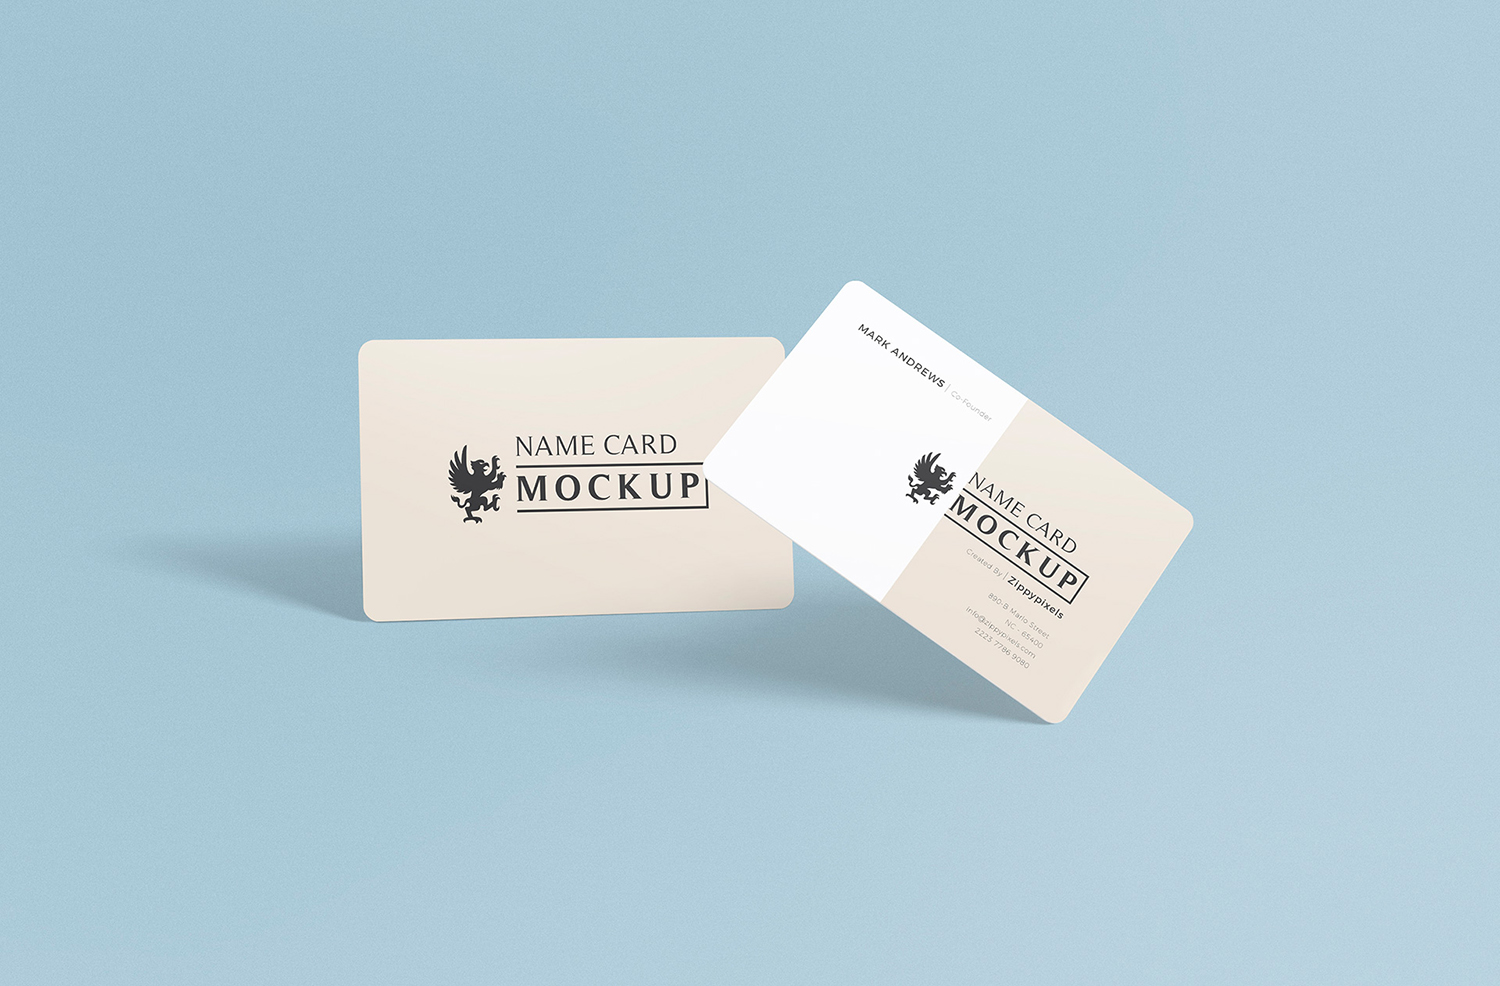 Exquisite Free Name Card Mockup PSD